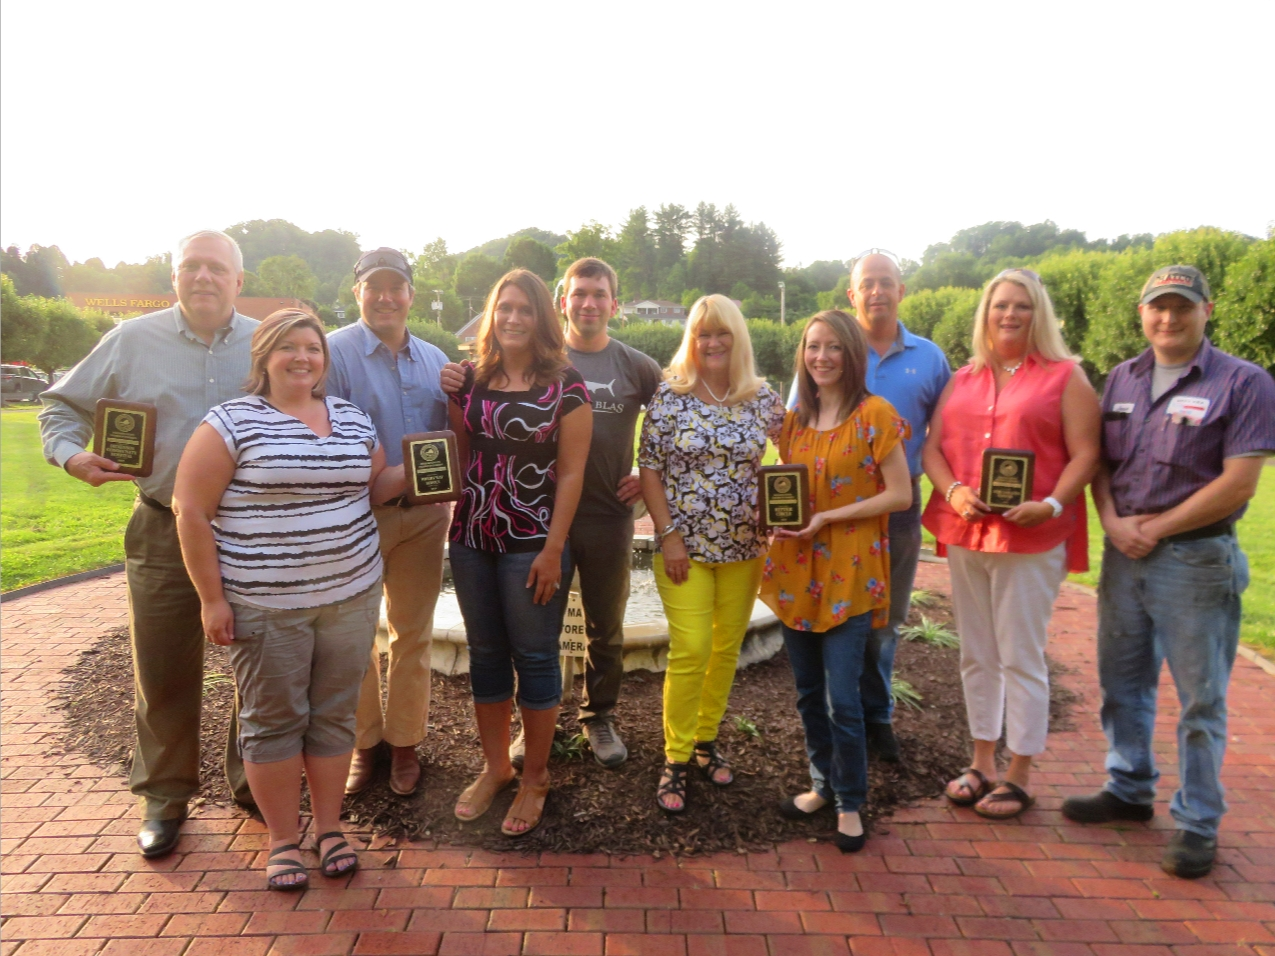 Chamber President/CEO Rita Surratt, center with winners of the Dickenson County Chamber of Commerce Businesses of the Year. From left: Mark Vanover – Dickenson Community Hospital, Heather & Josh Wright and Ben & Marsha Barton – Wright Way Service, Surratt, Brittany Bise – Ritter Circle, Inc., and Shelly & Jennifer Mullins and Jesse Crihfield, West End Auto.